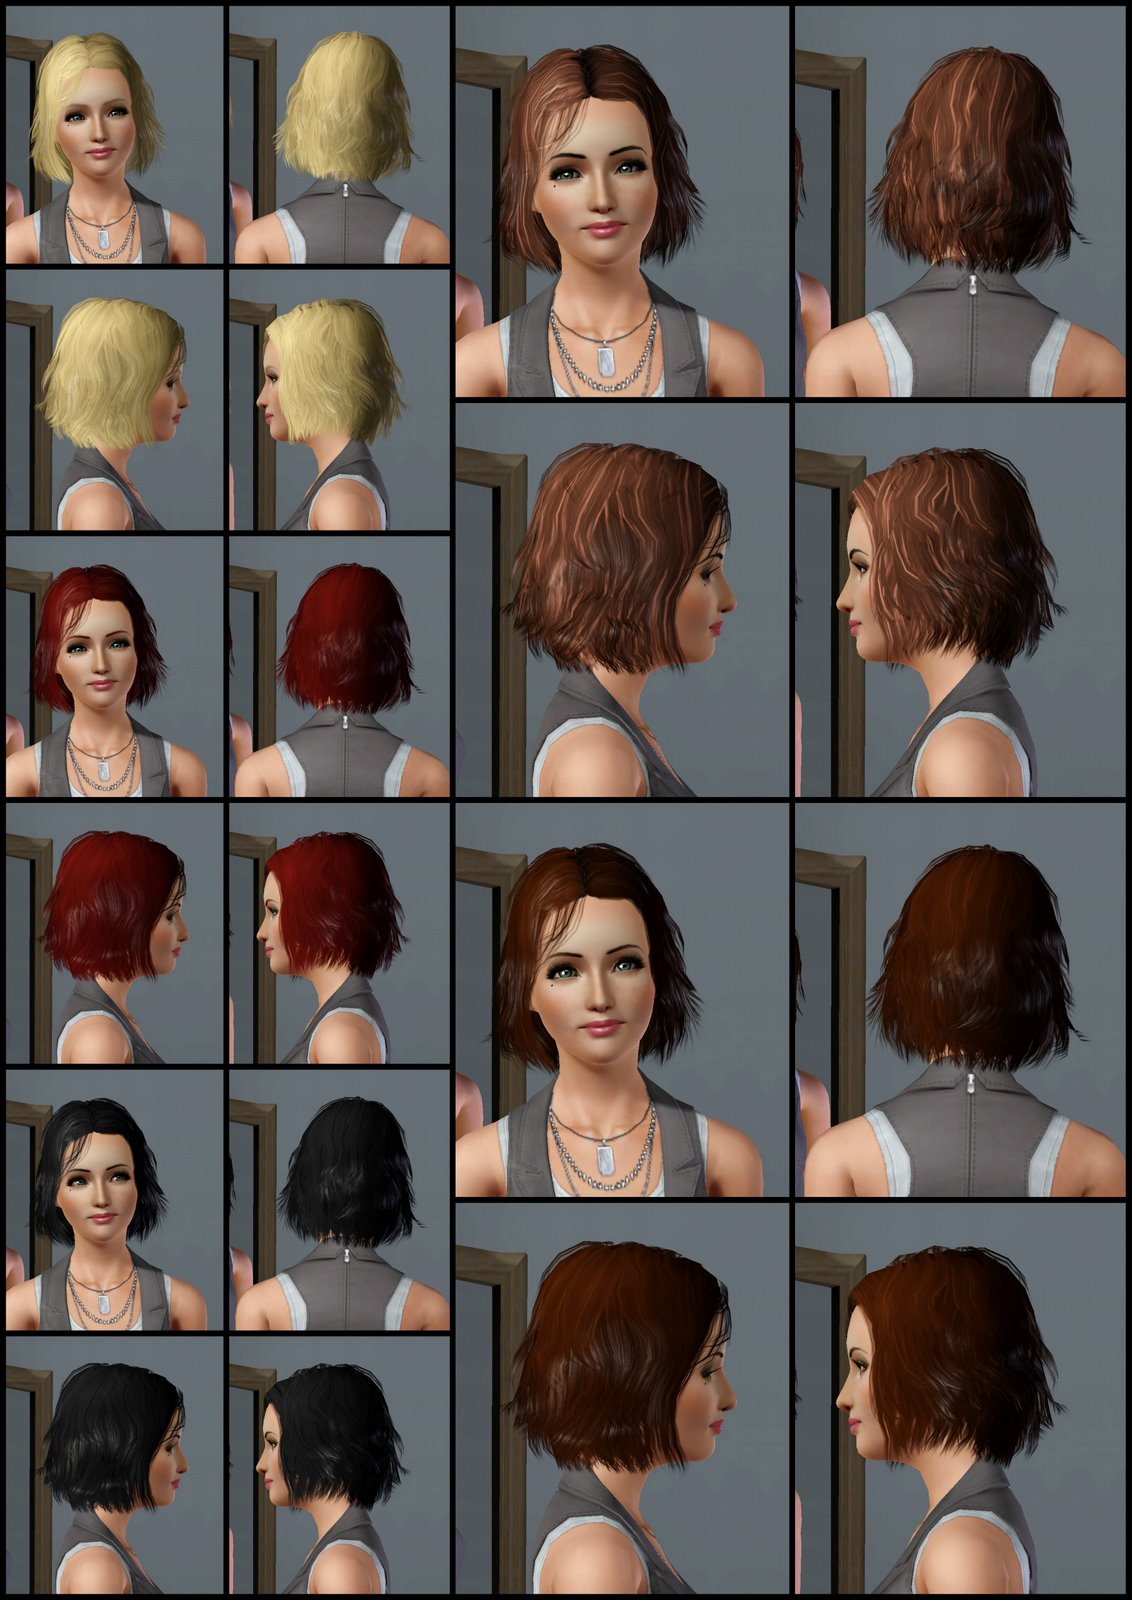 The Sims 3 Store: Hair Showroom: Frizzy Hair